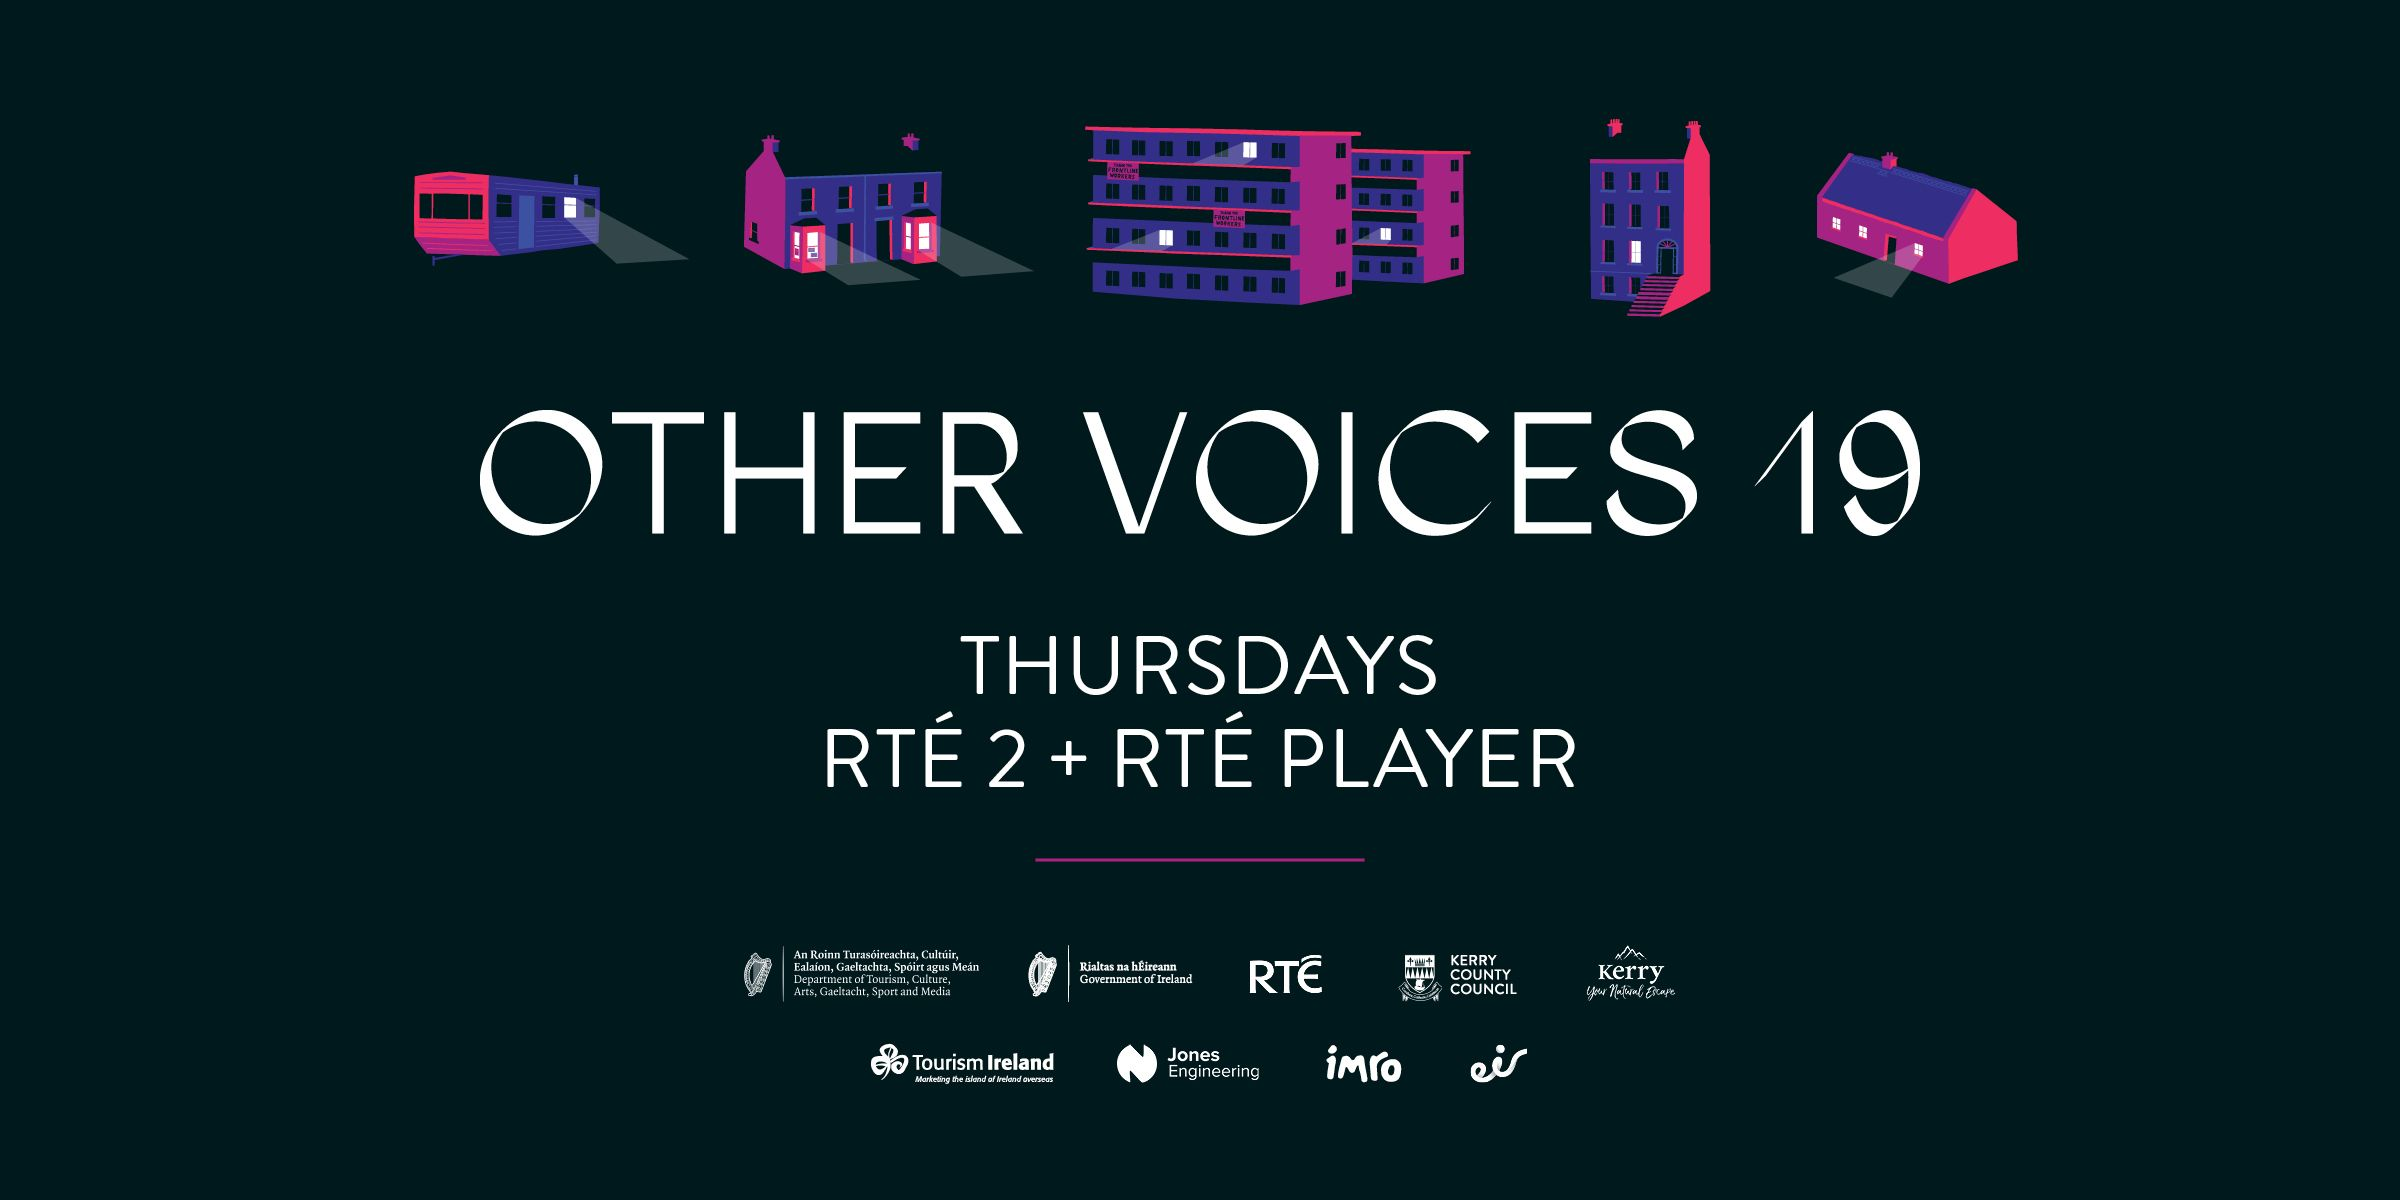 Other Voices Series 19 on RTÉ this Spring